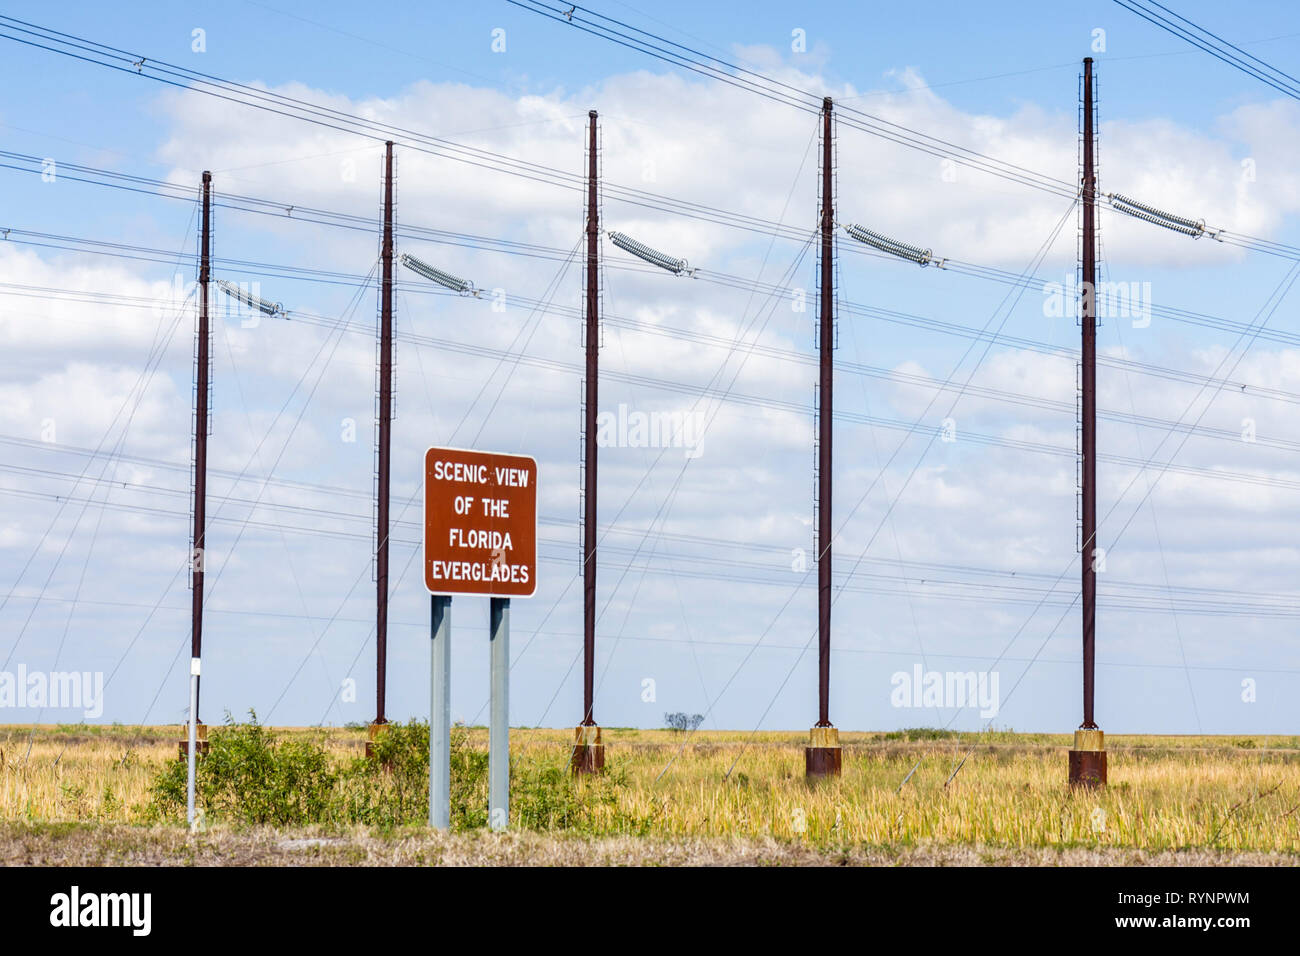 Everglades Florida Alligator Alley Interstate 75 saw grass sign scenic view utility poles wires crisscrossing human intrusion ec - Stock Image